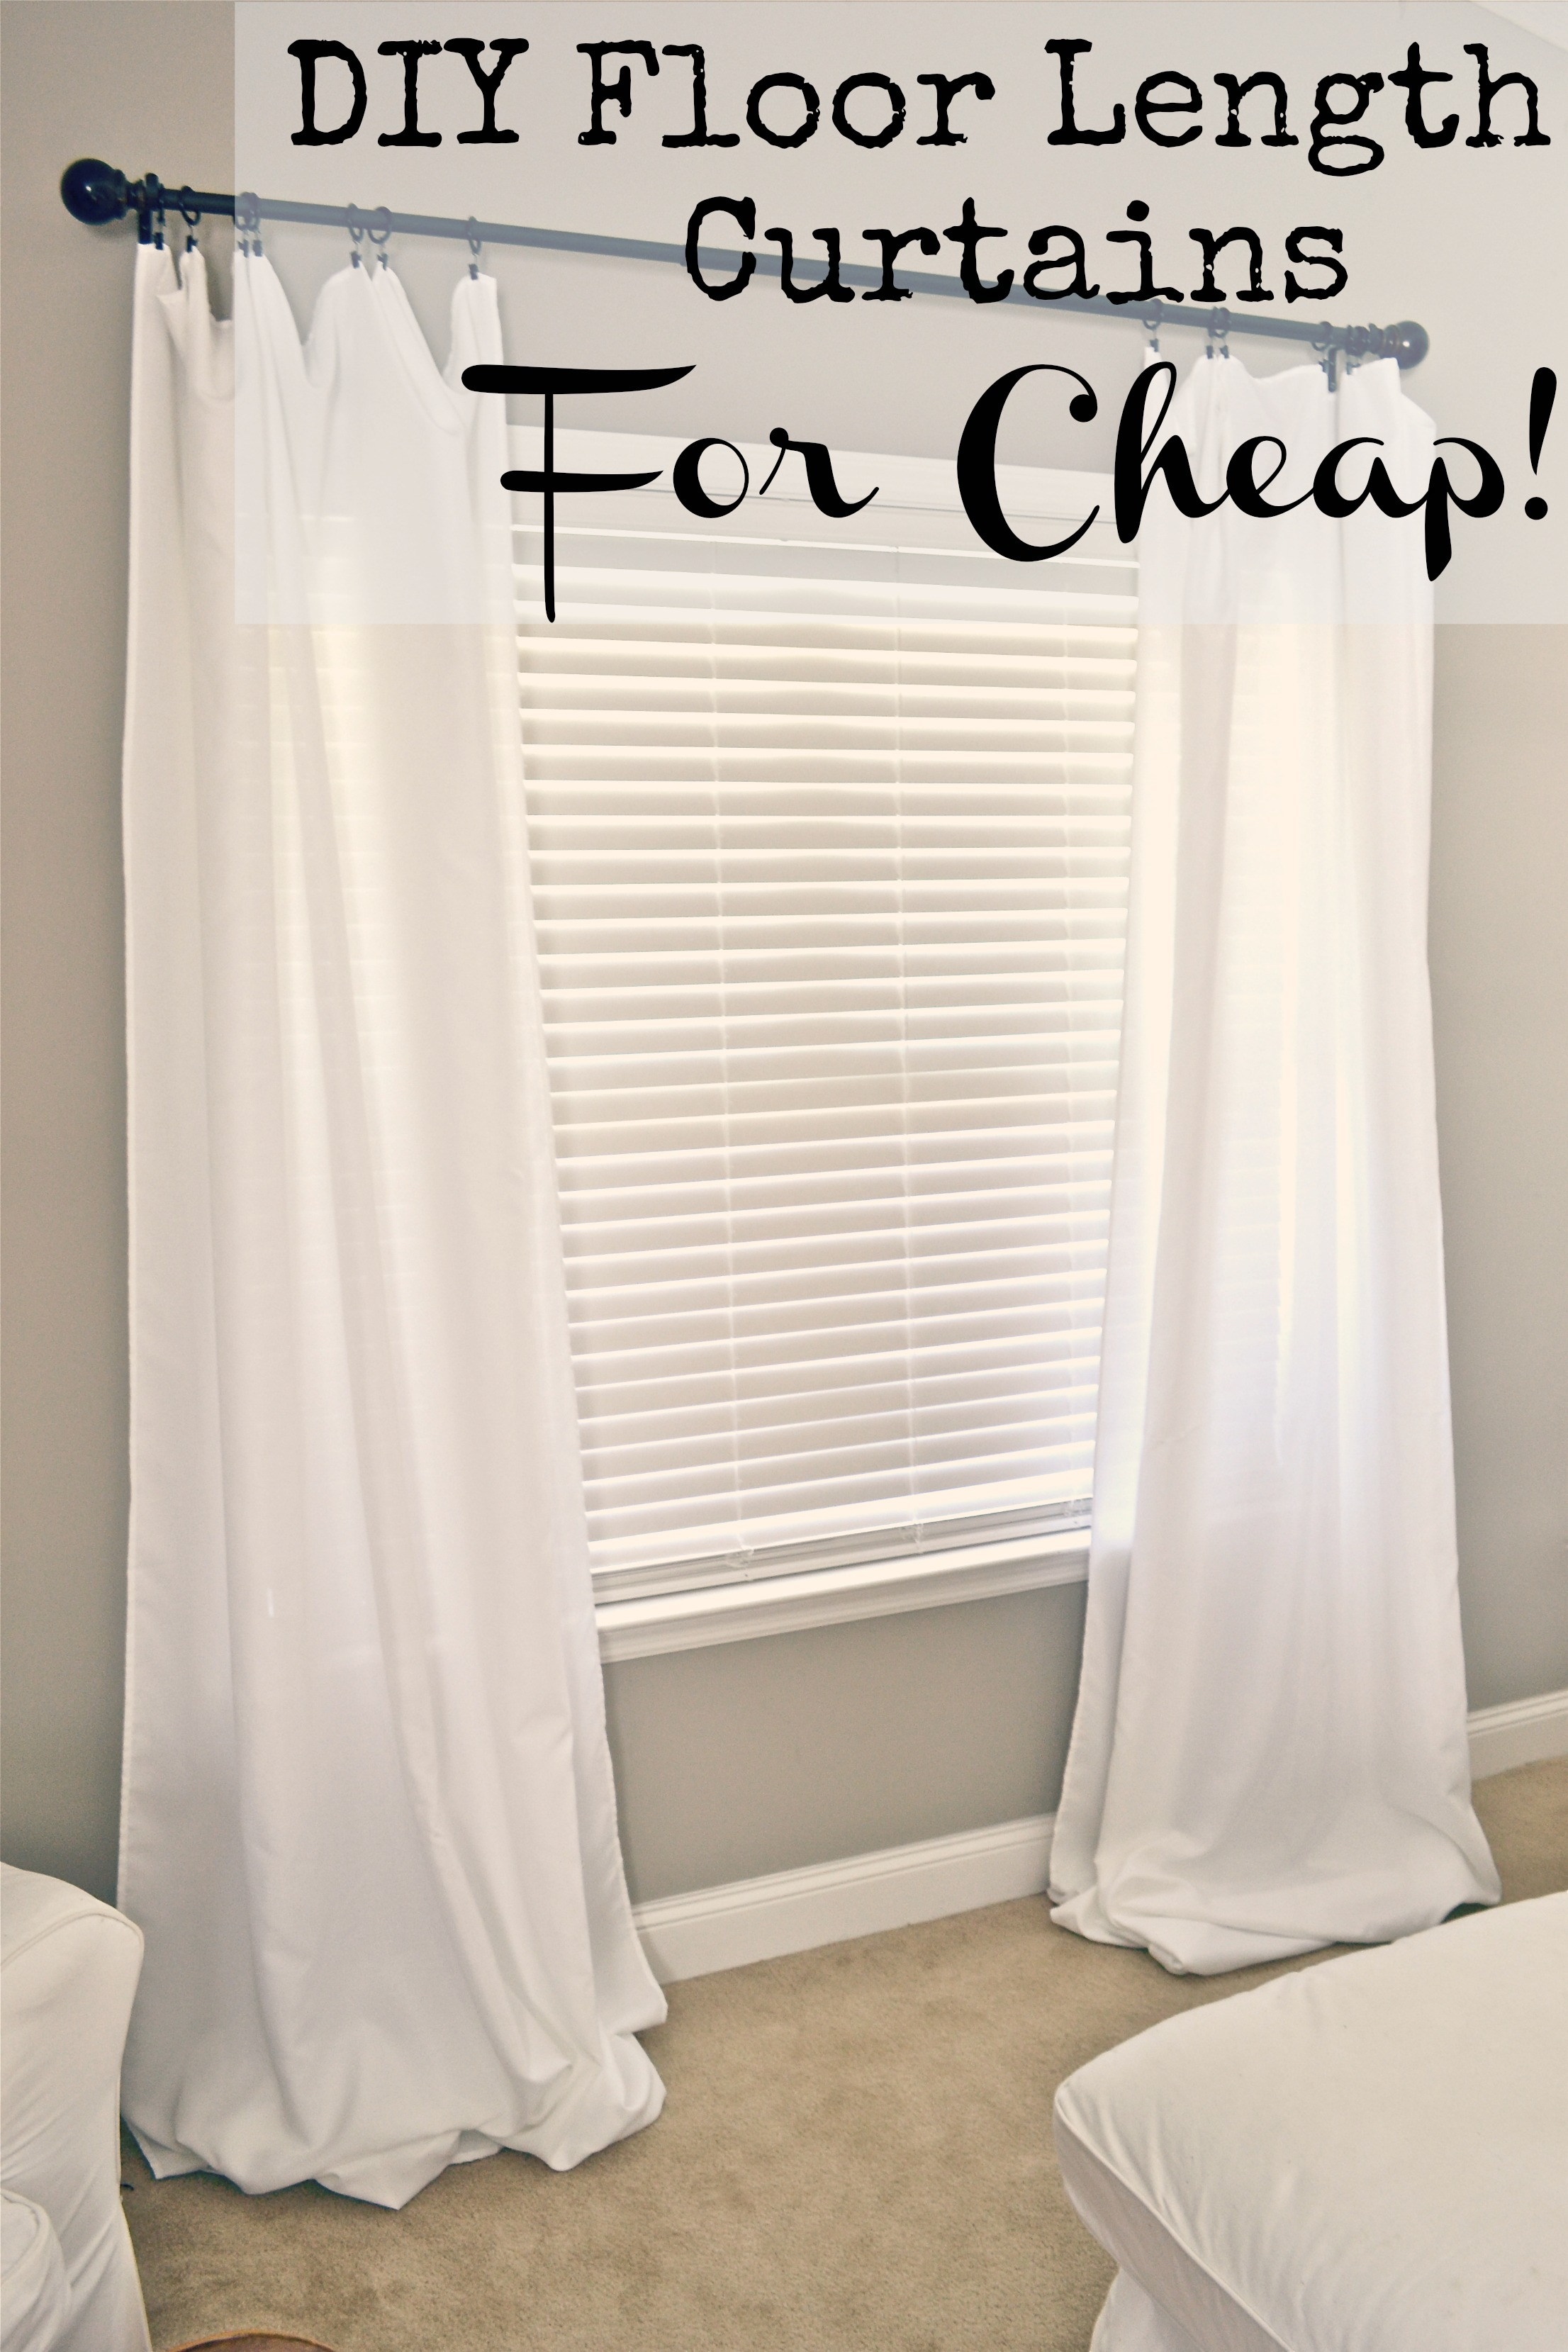 Where Can I Buy Cheap Curtains Diy Floor Length Curtains Liz Marie Blog